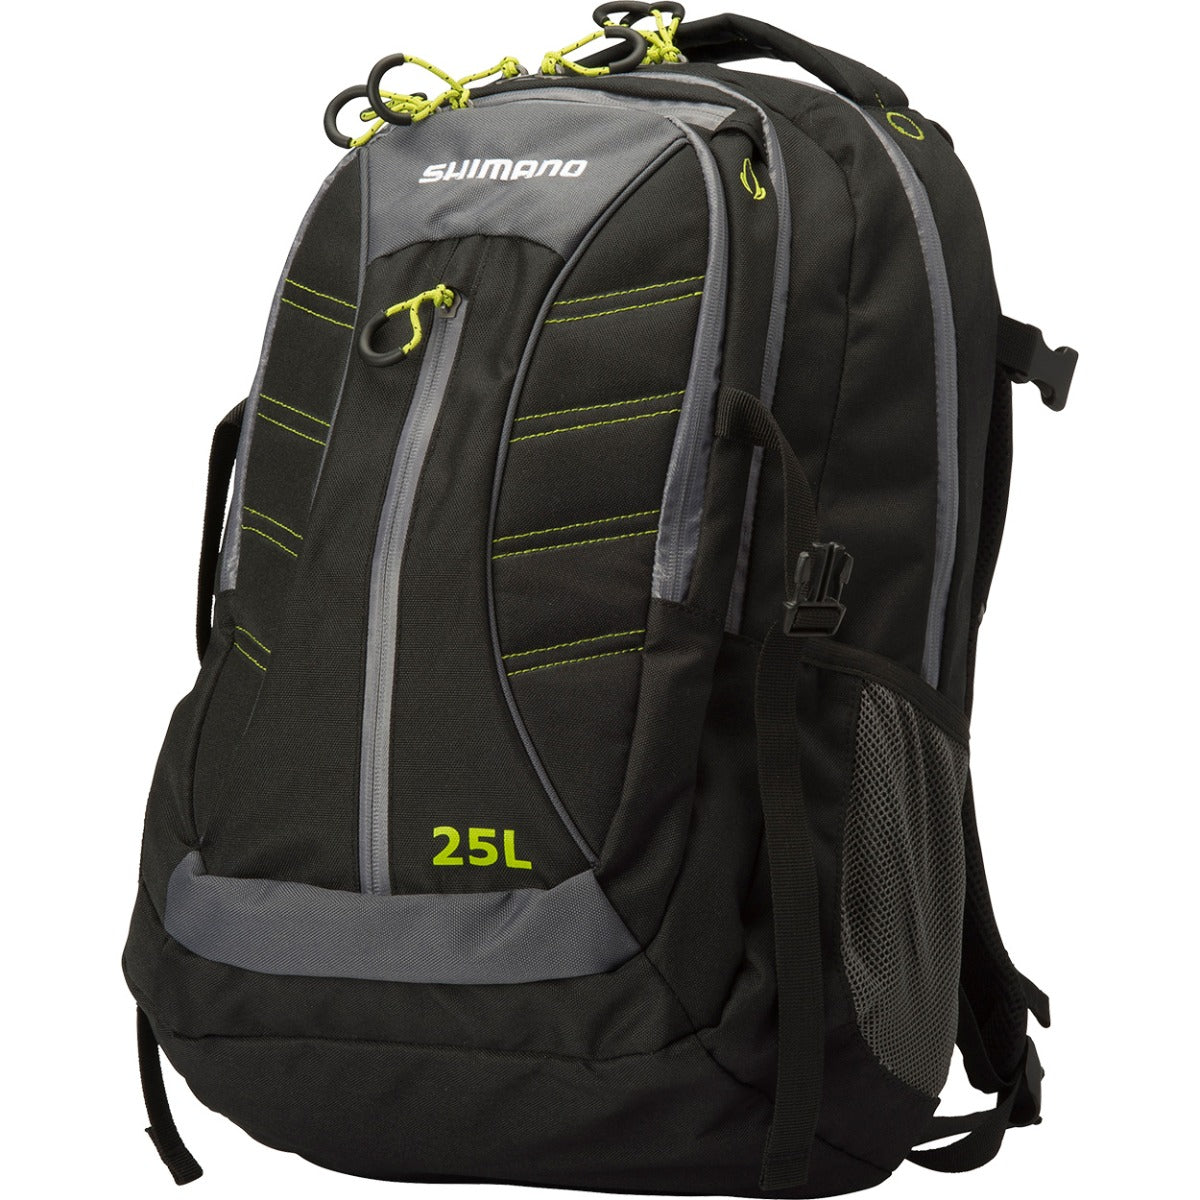 Shimano Tackle Backpack 25L